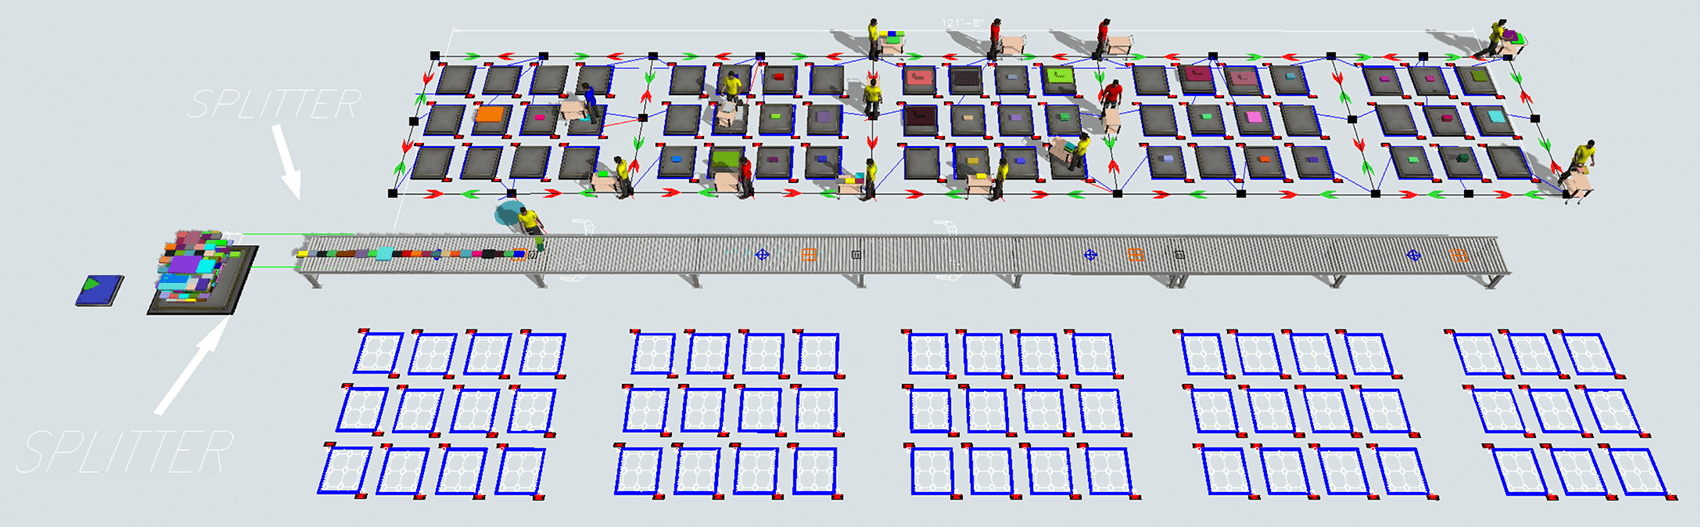 Warehouse Simulation with Physical Distancing